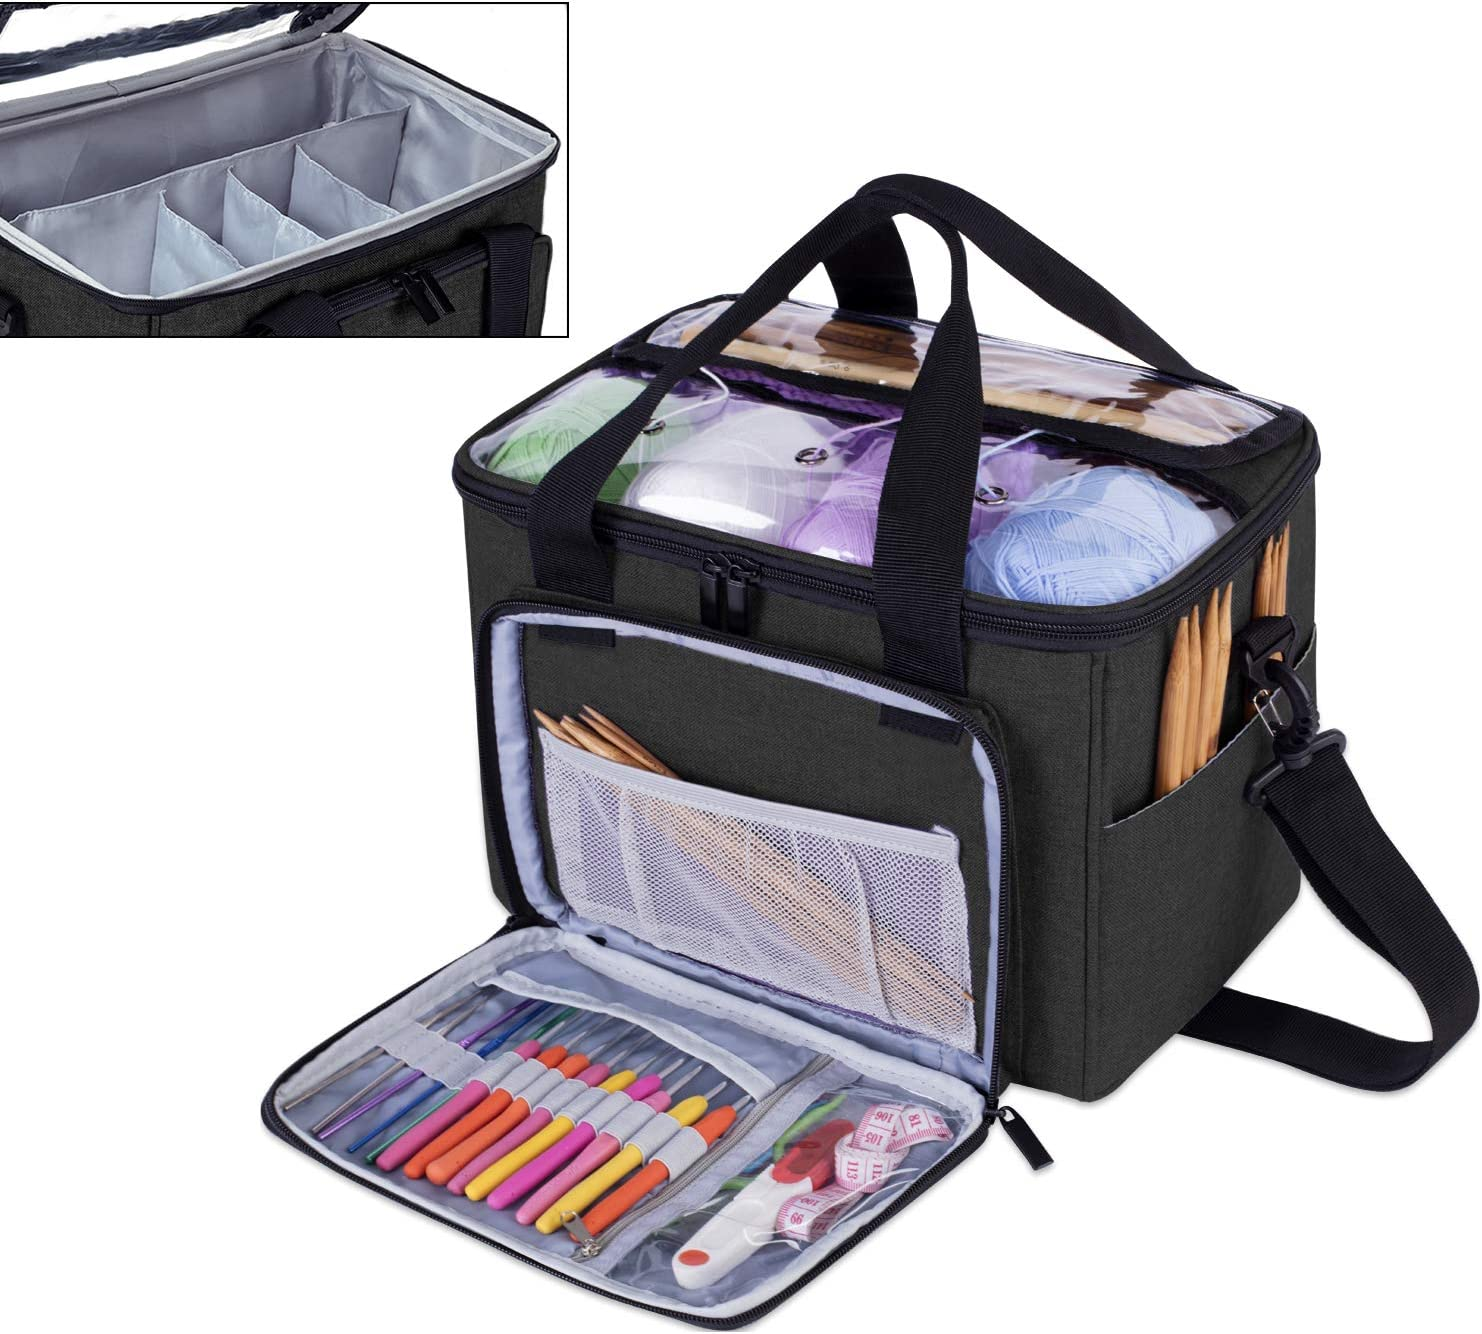 Large with Cover, Gray Yarn Storage Tote Bag with Inner Divider for Yarn and Unfinished Project Teamoy Knitting Bag